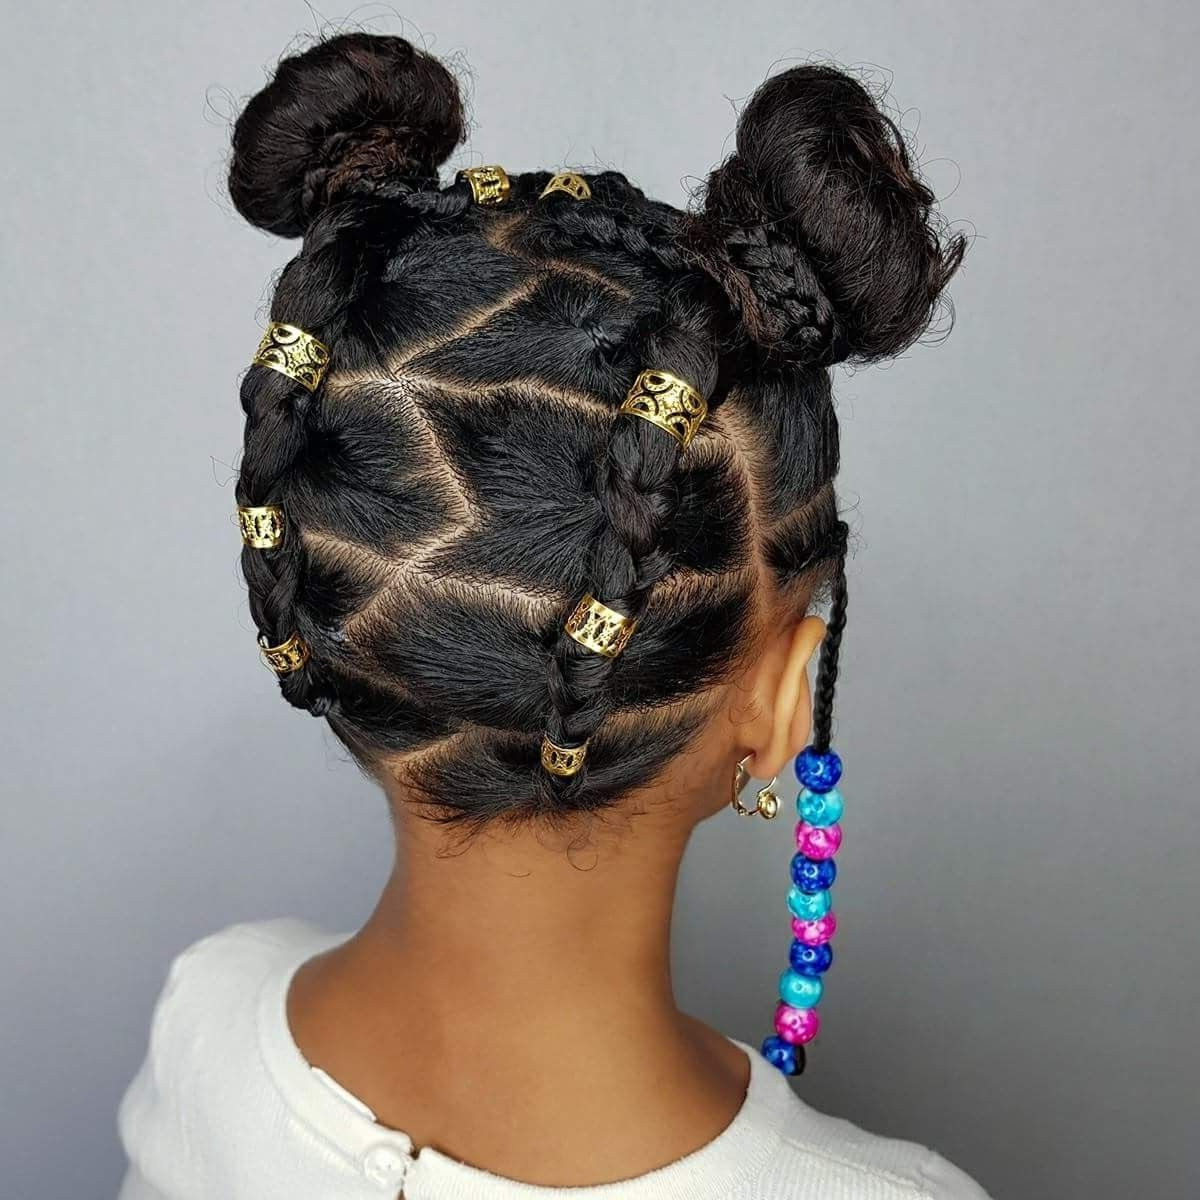 Pin On Natural Hair Versatility Regarding Famous Pins And Beads Hairstyles (View 12 of 20)